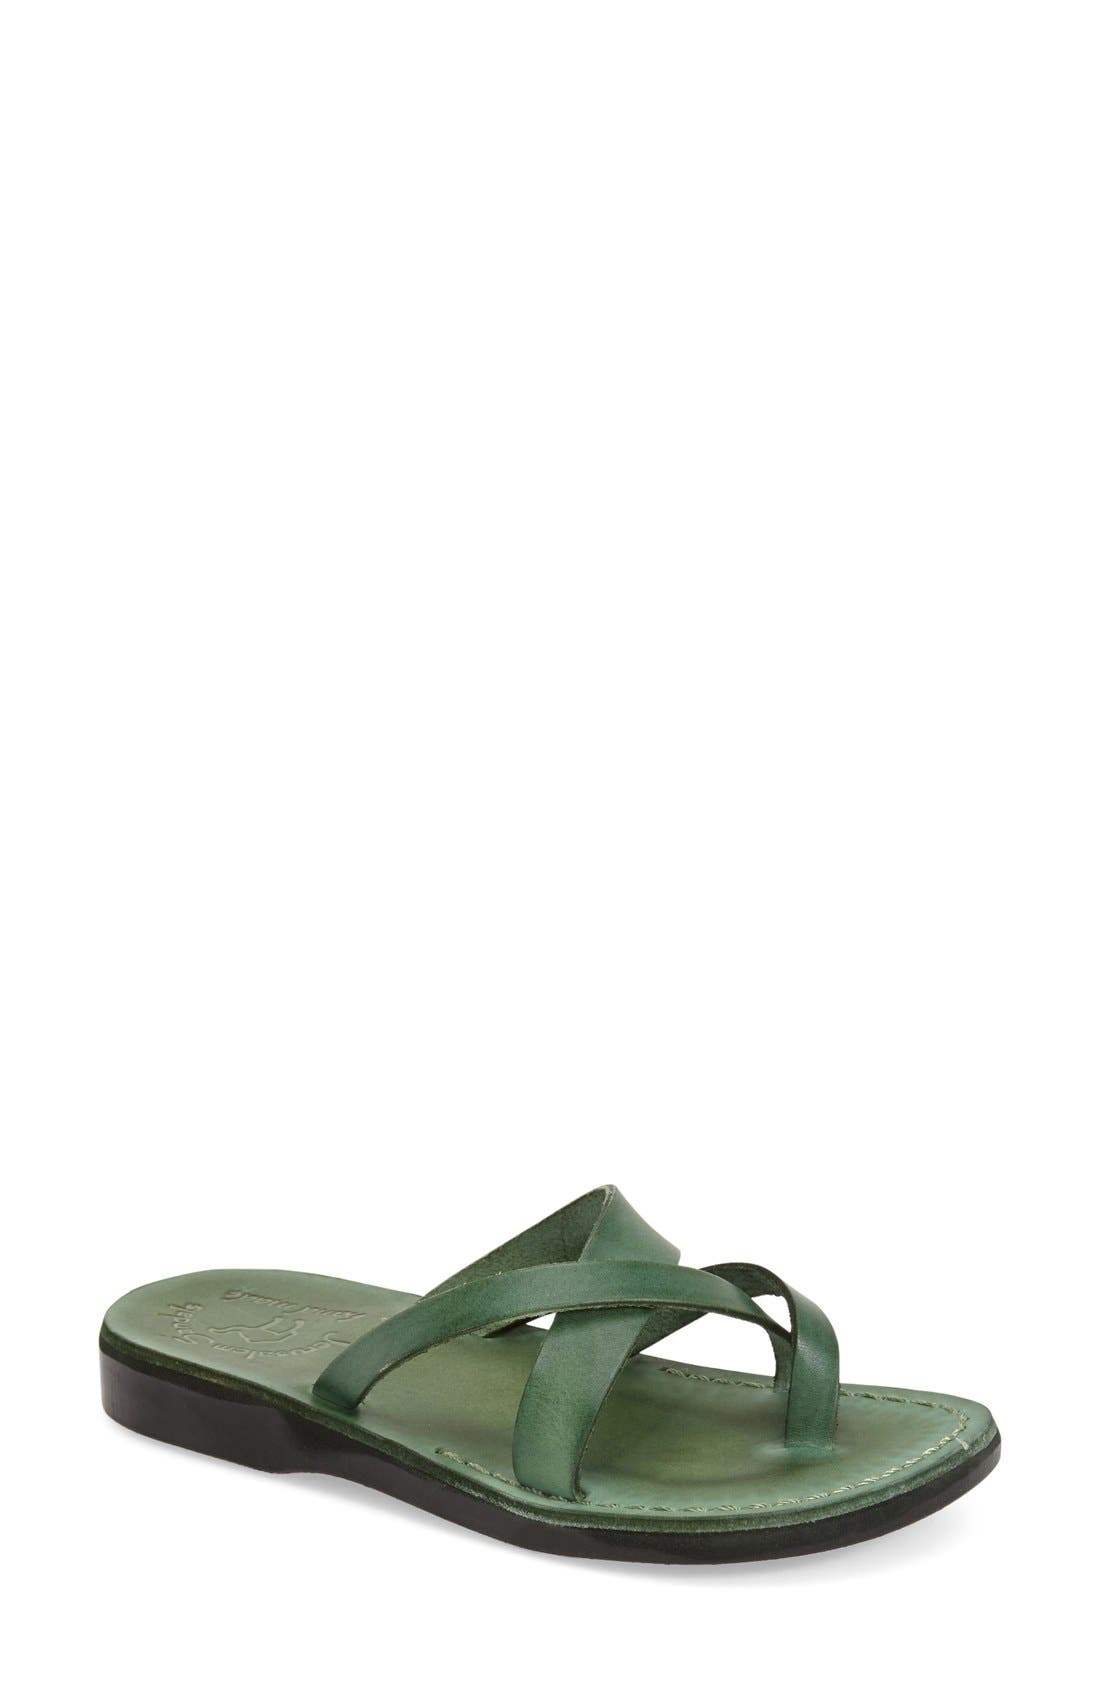 'Abigail' Strappy Slide Sandal,                         Main,                         color, Green Leather